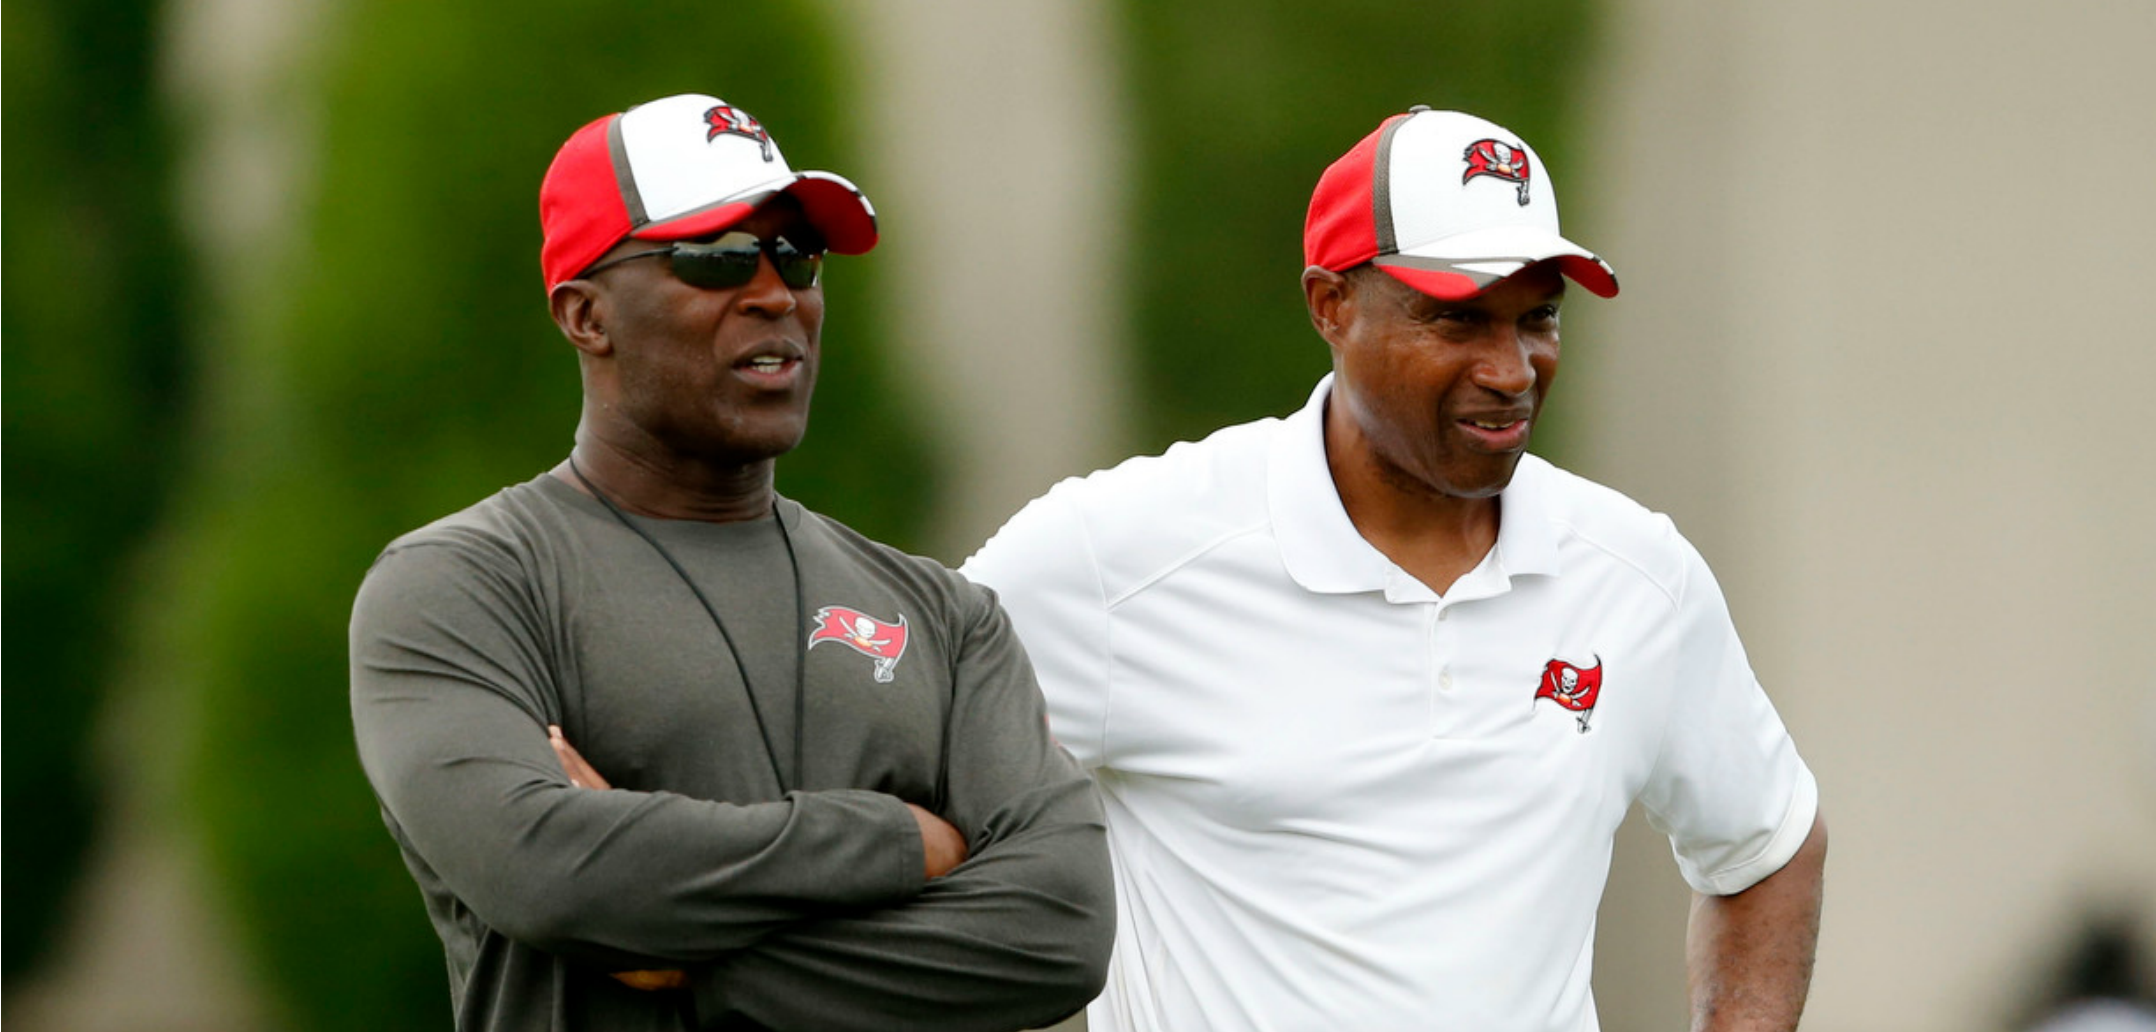 Courtesy of Fox Sports: Lovie Smith (left) and Leslier Frazier (right) make for an elite tandem in Tampa.